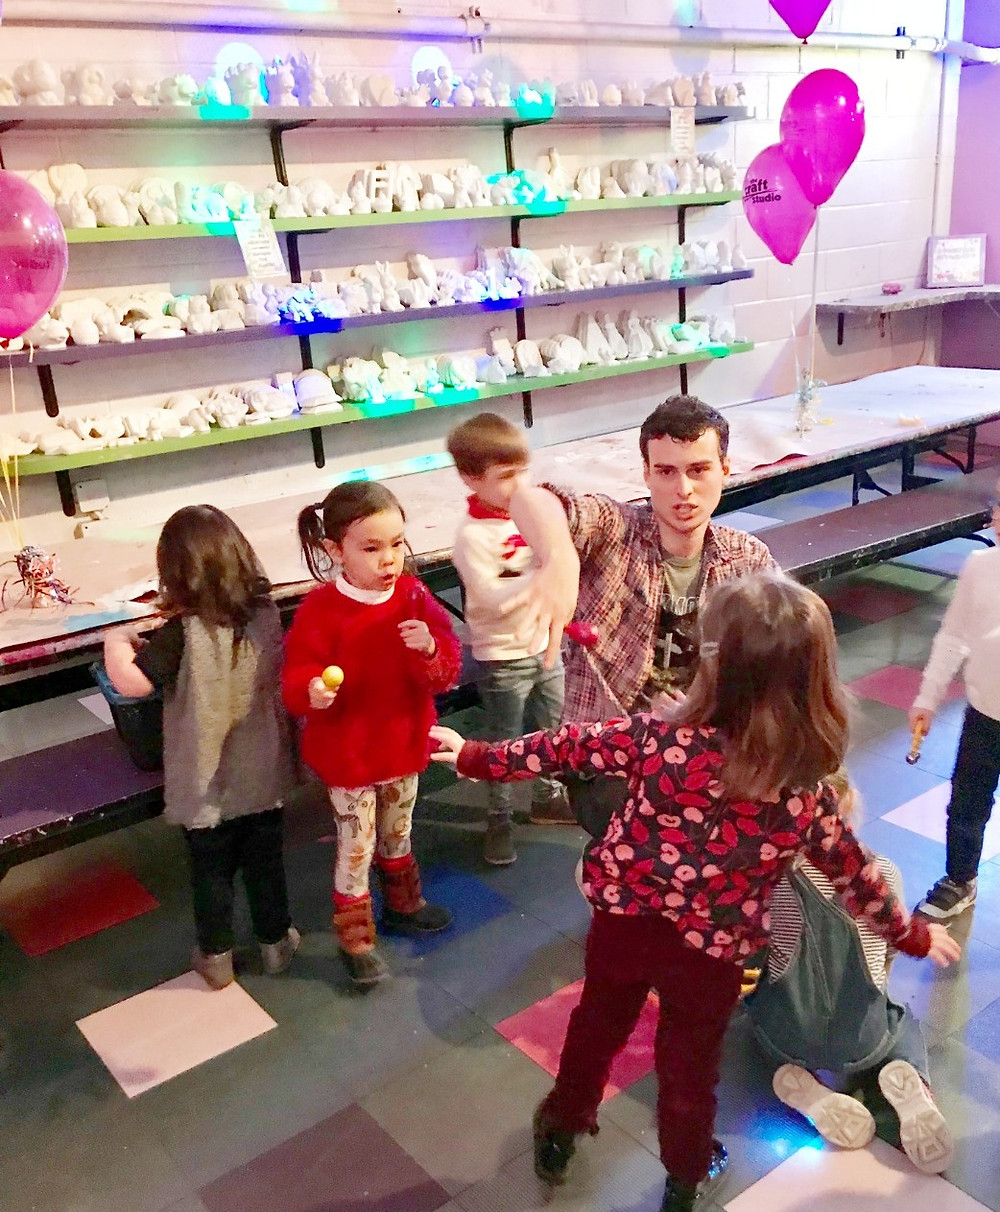 The Craft Studio, arts and crafts for kids, winder indoor fun guide for kids 2018, Curious G and Me, kids ceramics party